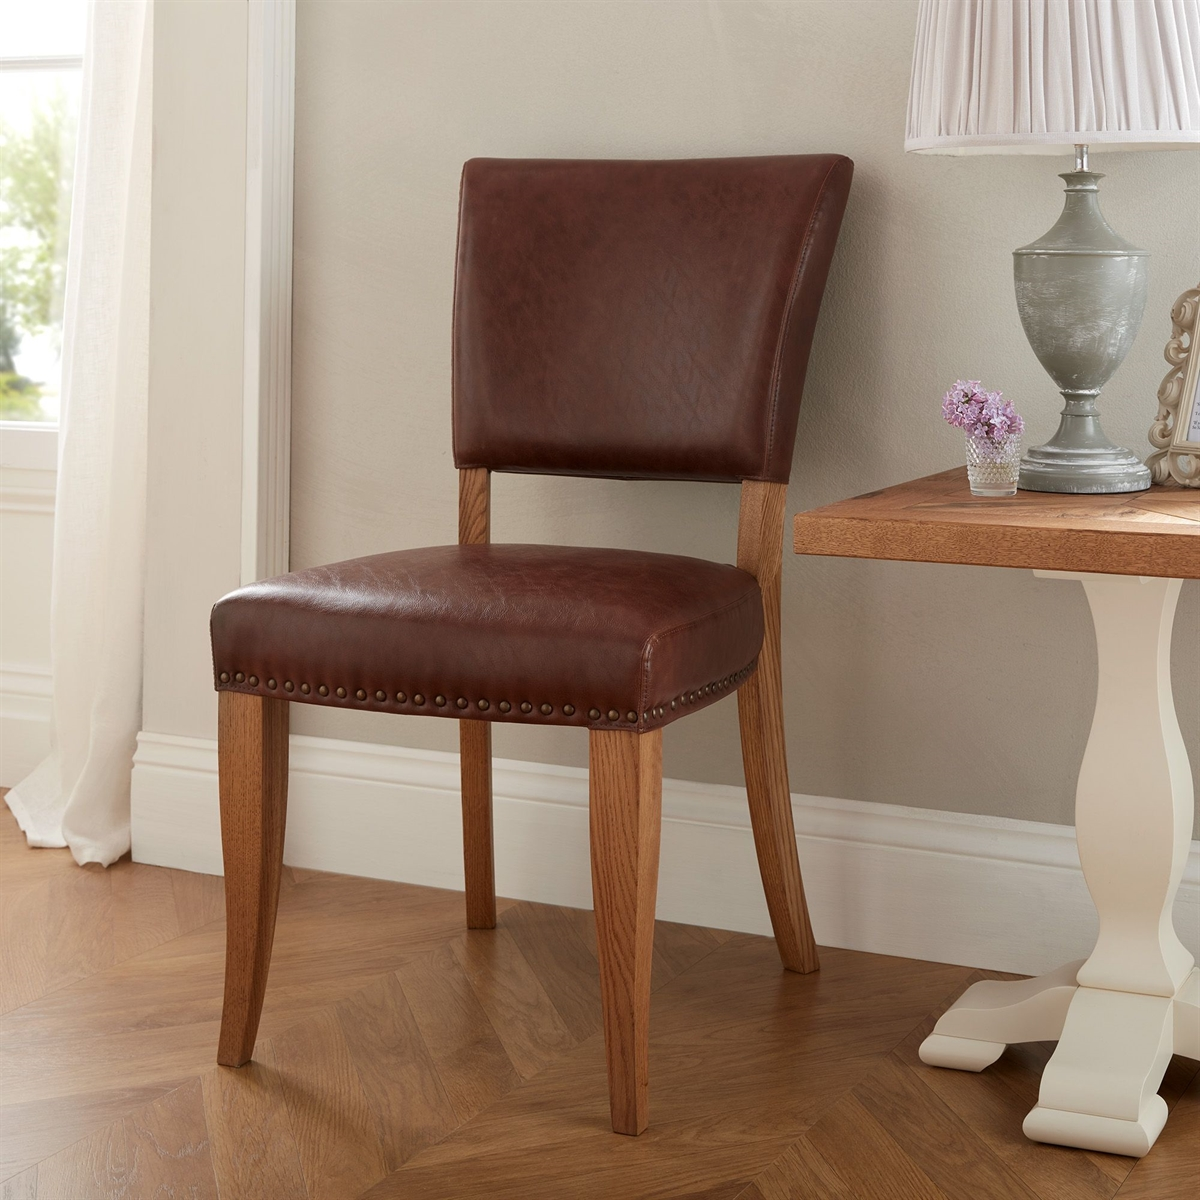 Belgrave Rustic Oak - Upholstered Chair - Tan Faux Leather